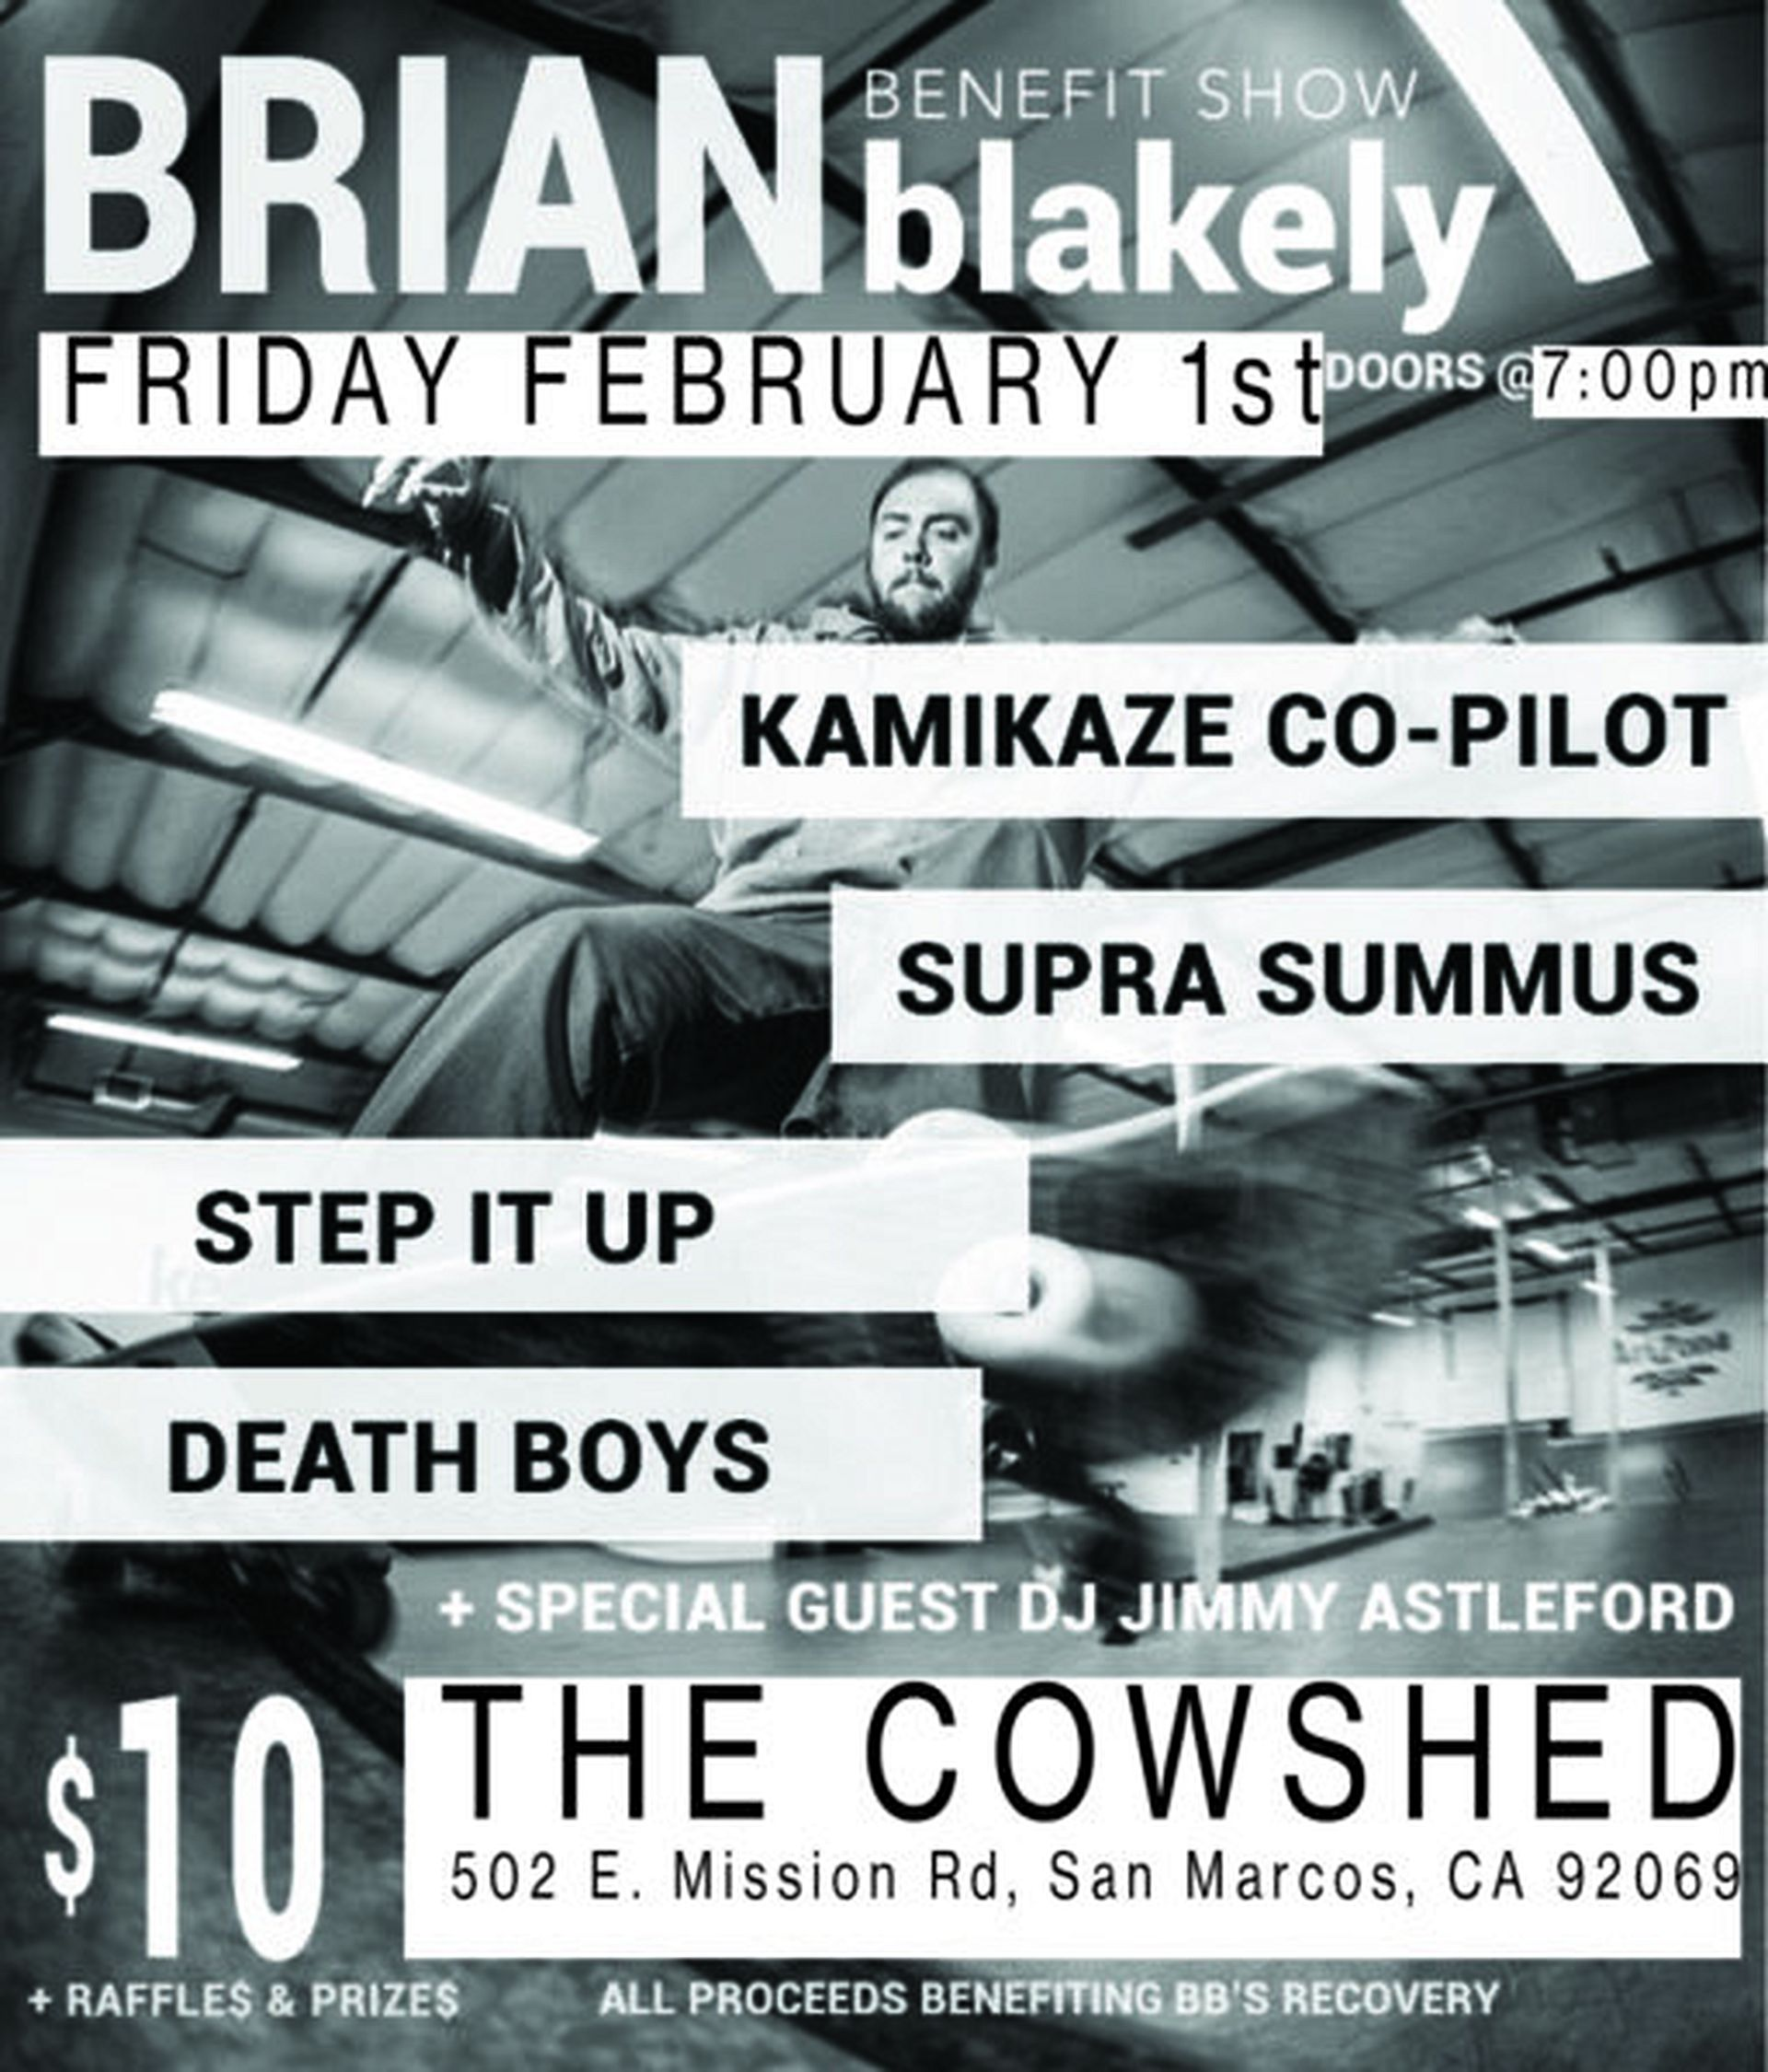 BRIAN BLAKELY BENEFIT SHOW ON FEBRUARY 2ND